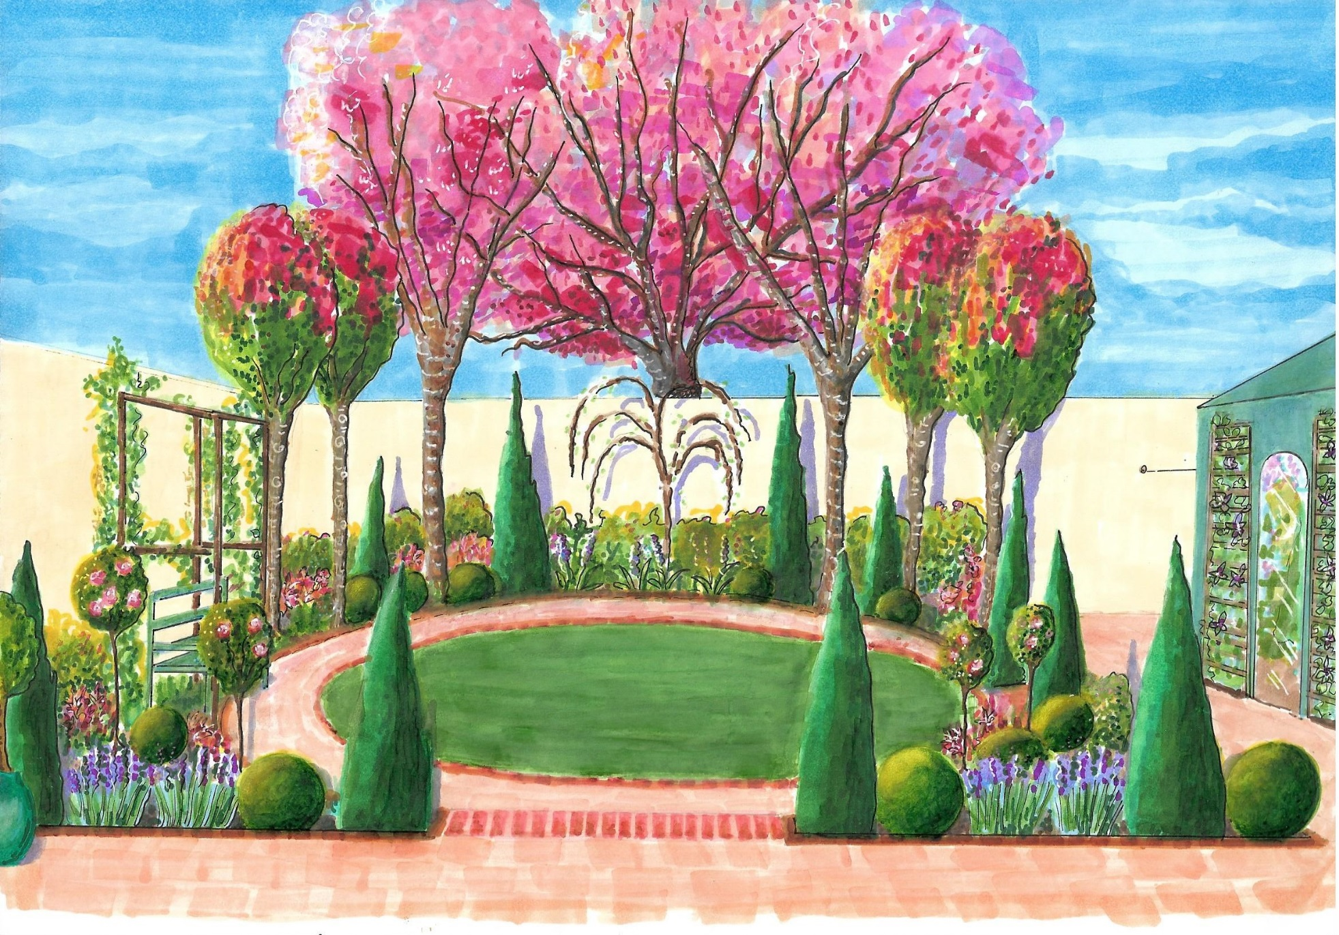 Perspective view of shallow garden